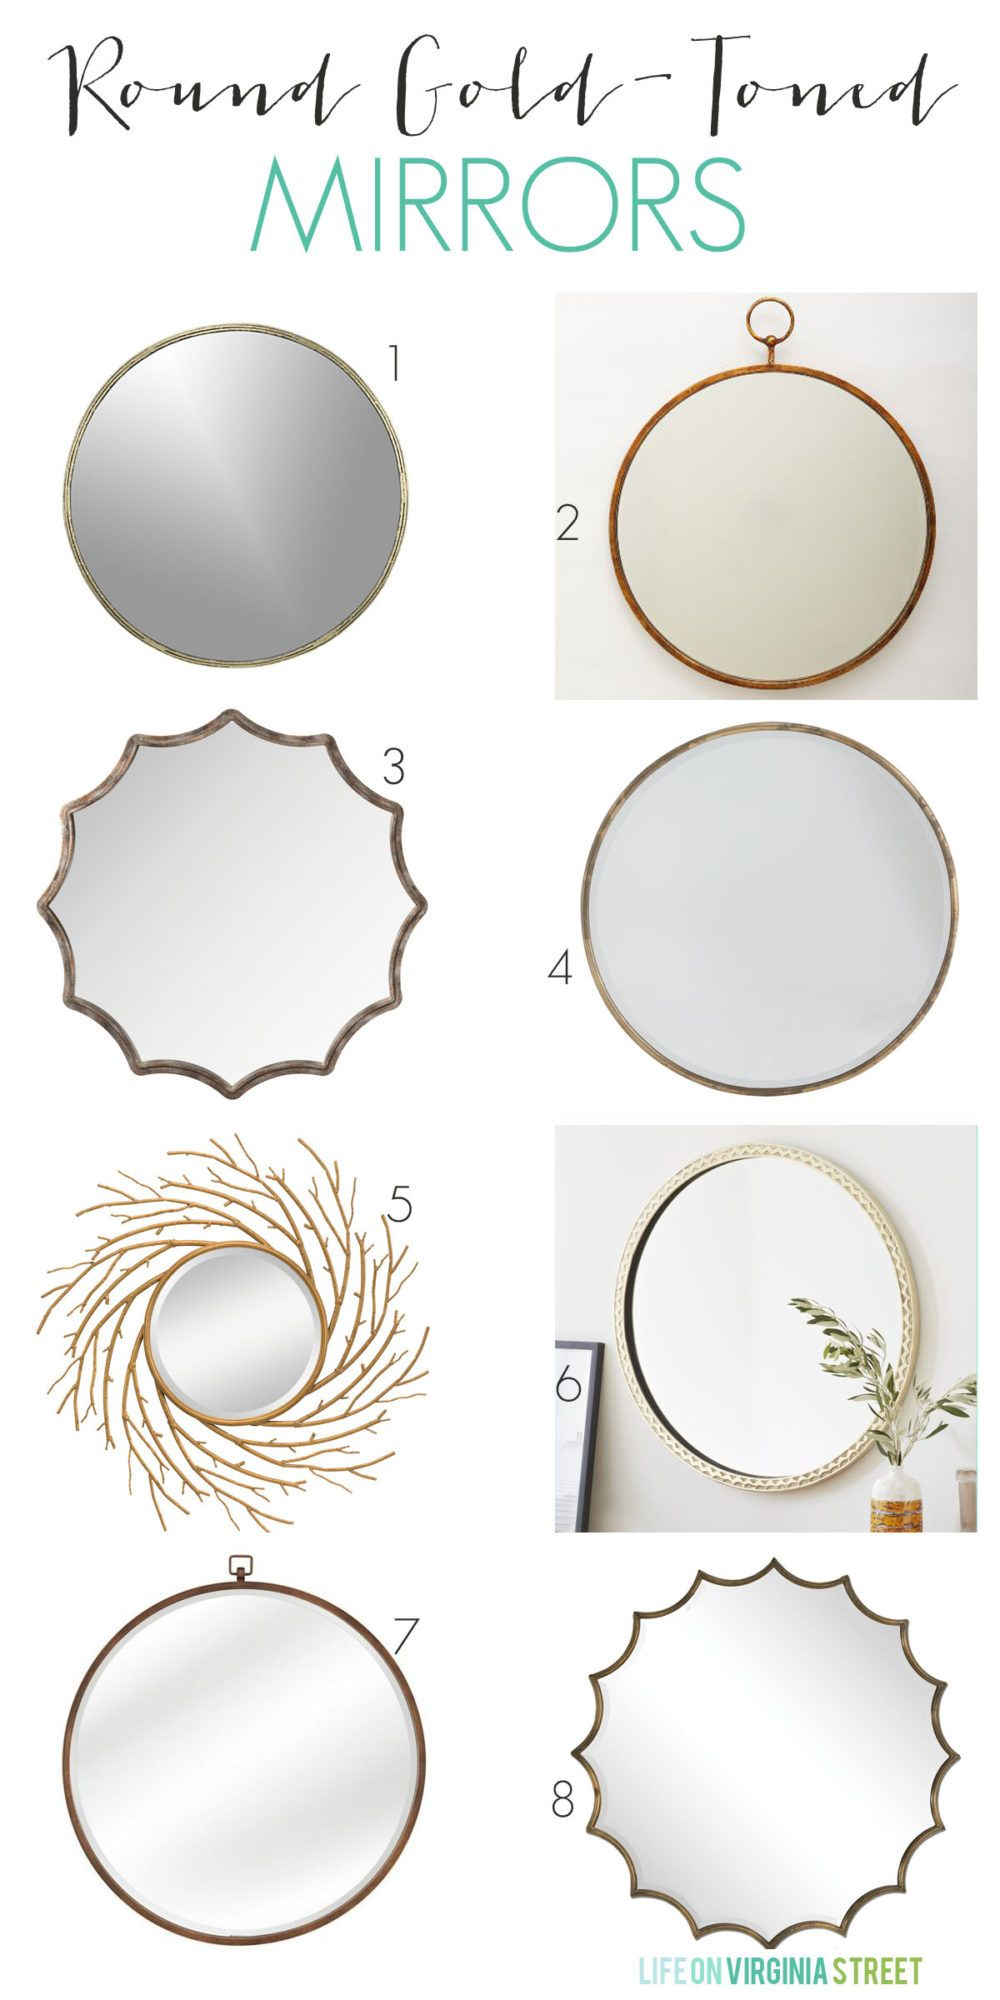 Best Gold Round Mirrors for Any Room is part of Gold Home Accessories Life - Are you on the hunt for a round mirror  Here are the best gold round mirrors I found during my search for the perfect accent piece for our dining room  Each of these mirrors offers beauty and versatility to look great in any space!